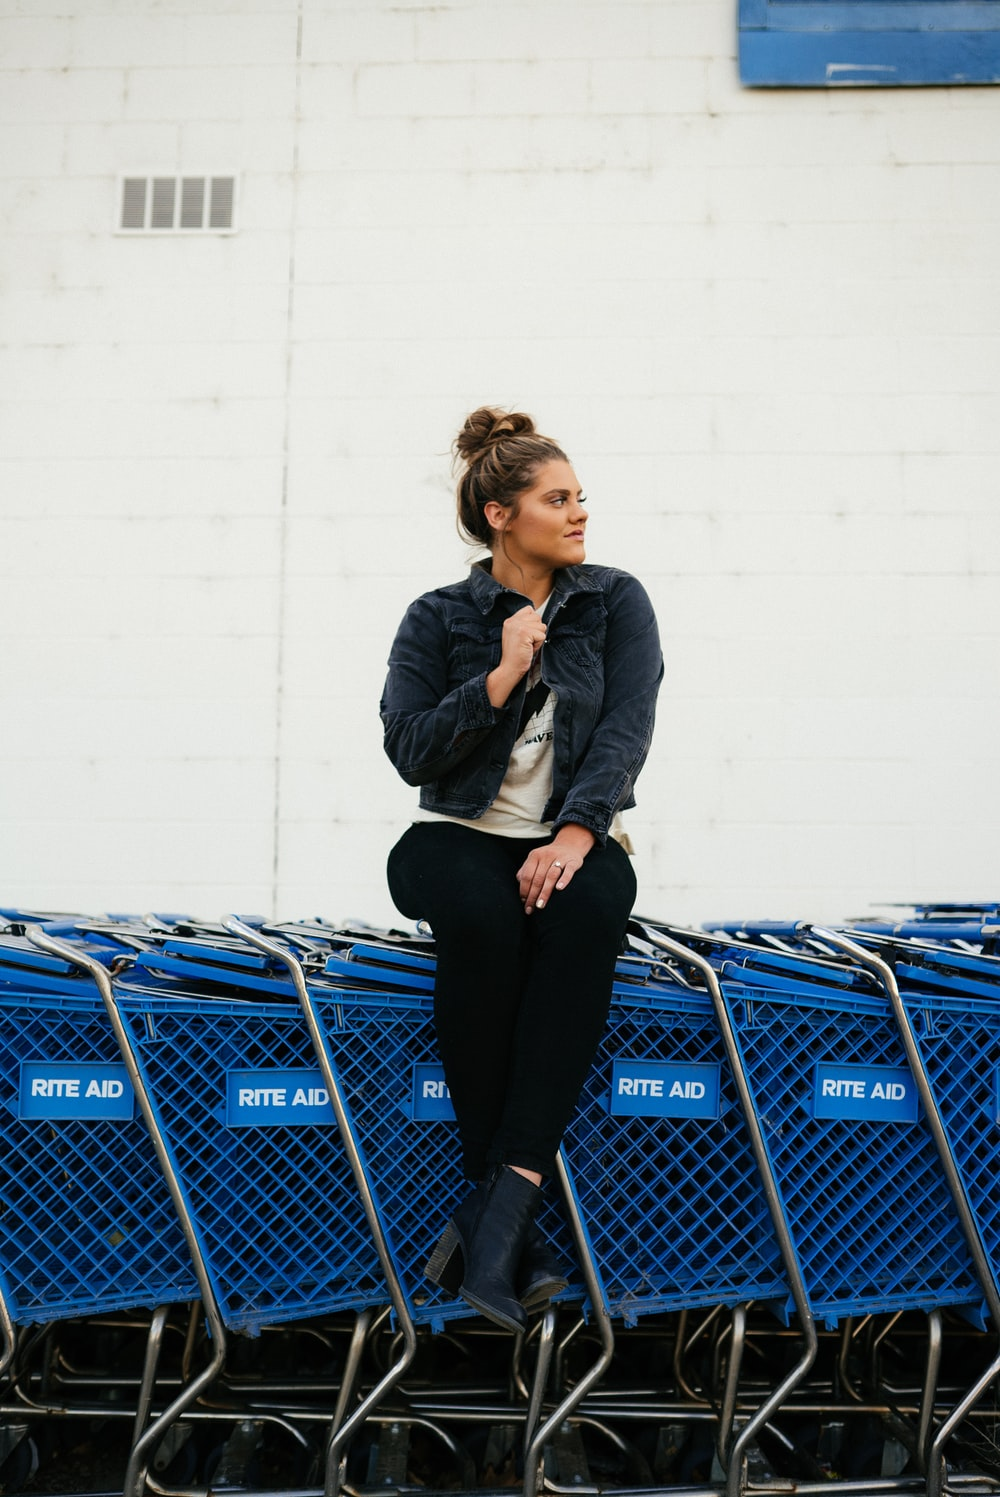 woman in gray jacket and black pants standing beside blue shopping cart